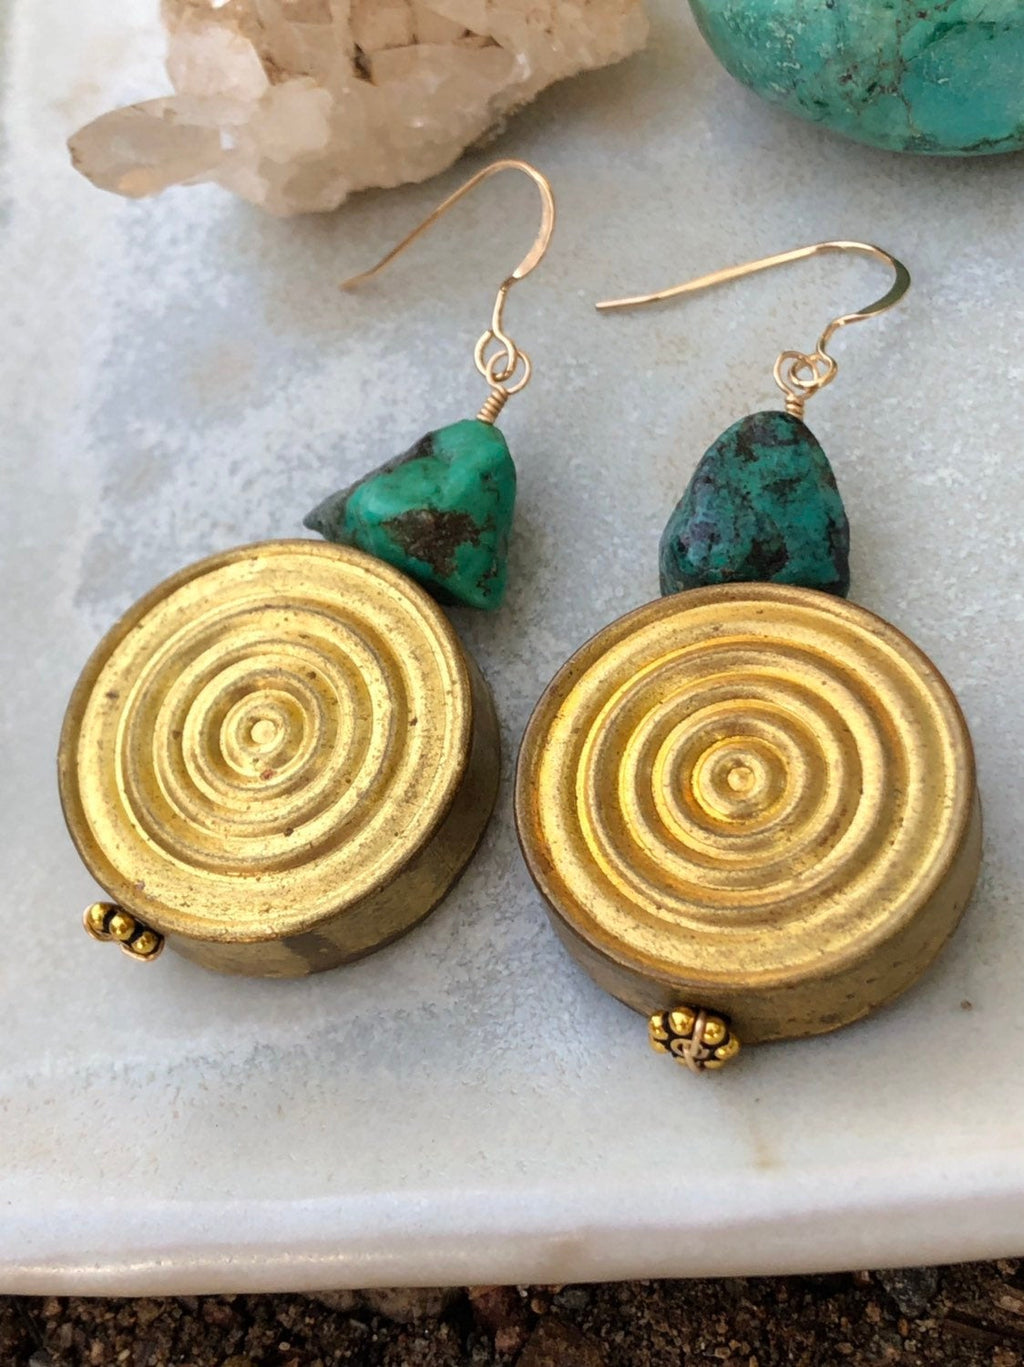 Turquoise Spiral Earrings / Tribal Style Earrings / Natural Genuine Turquoise Untreated / African Brass Spiral / 14k Gold Filled